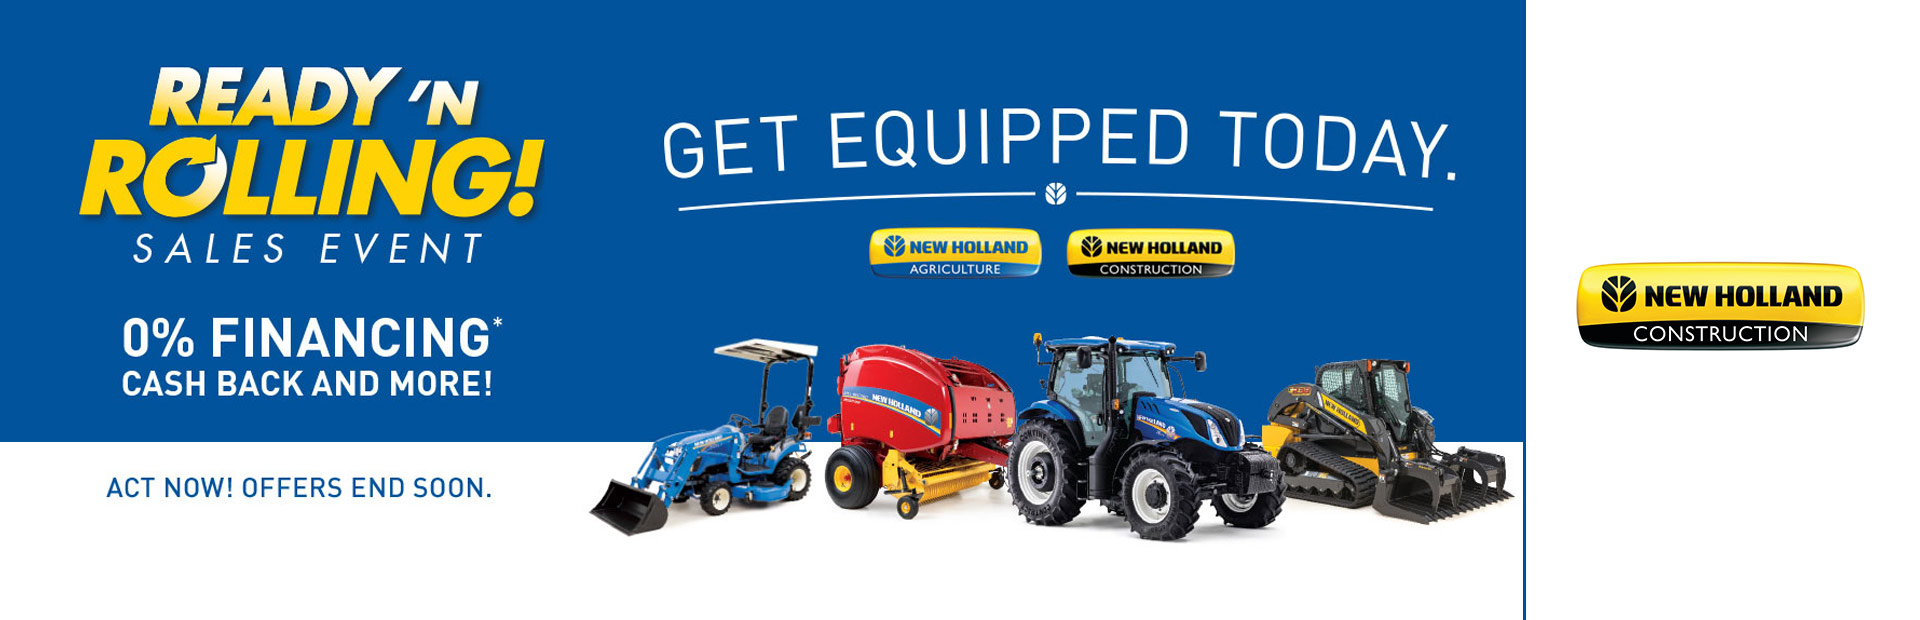 New Holland Construction: Ready N Rolling Sales Event